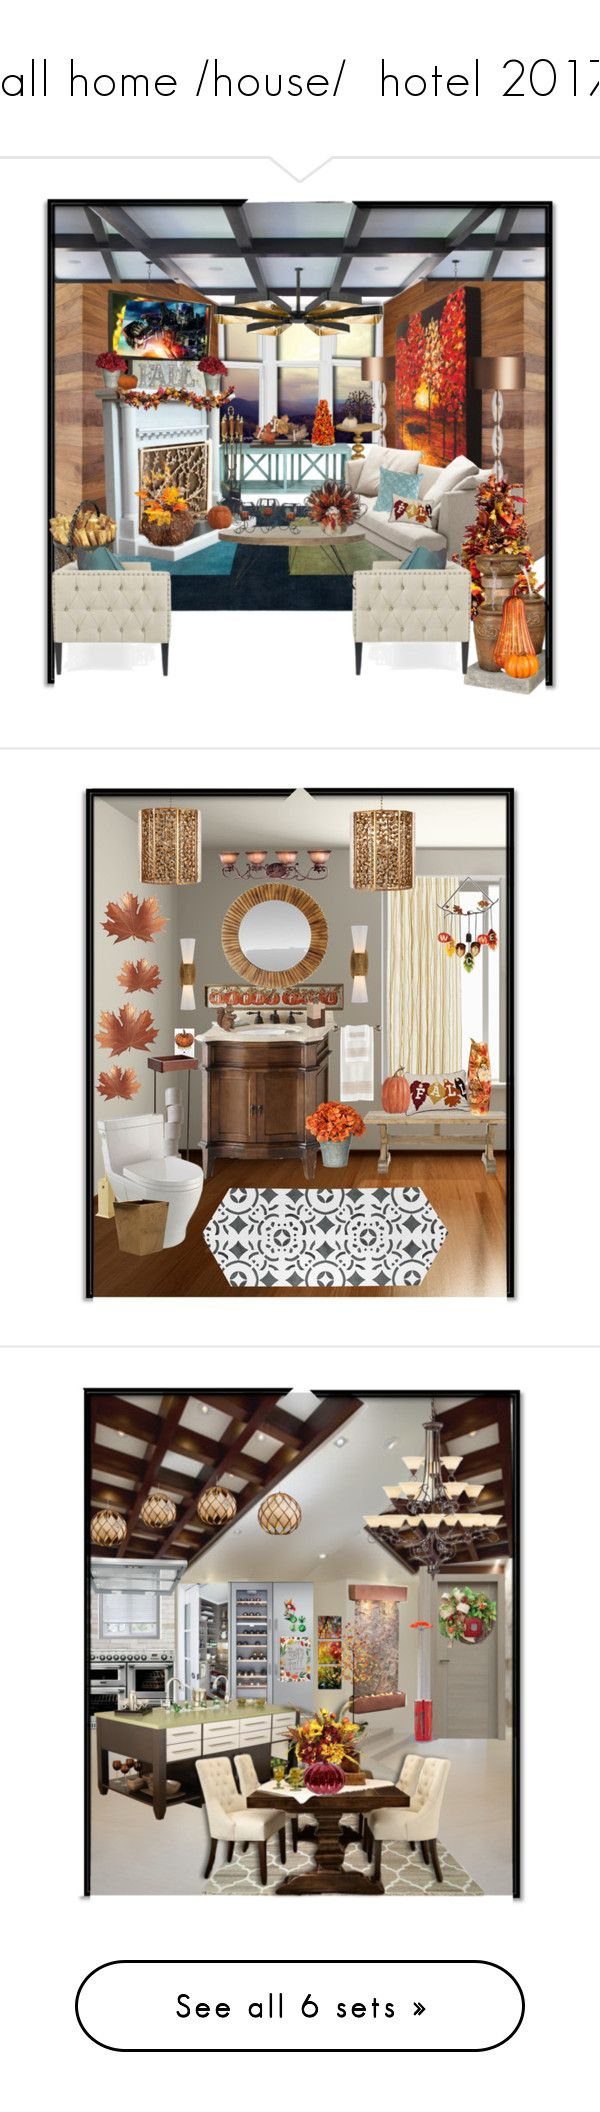 """fall home /house/  hotel 2017"" by dixiemartel ❤ liked on Polyvore featuring Umbra, CorLiving, Heathfield & Co., Redford House, Improvements, Bensen, Pine Cone Hill, Vagabond House, Fountain and Bernhardt"